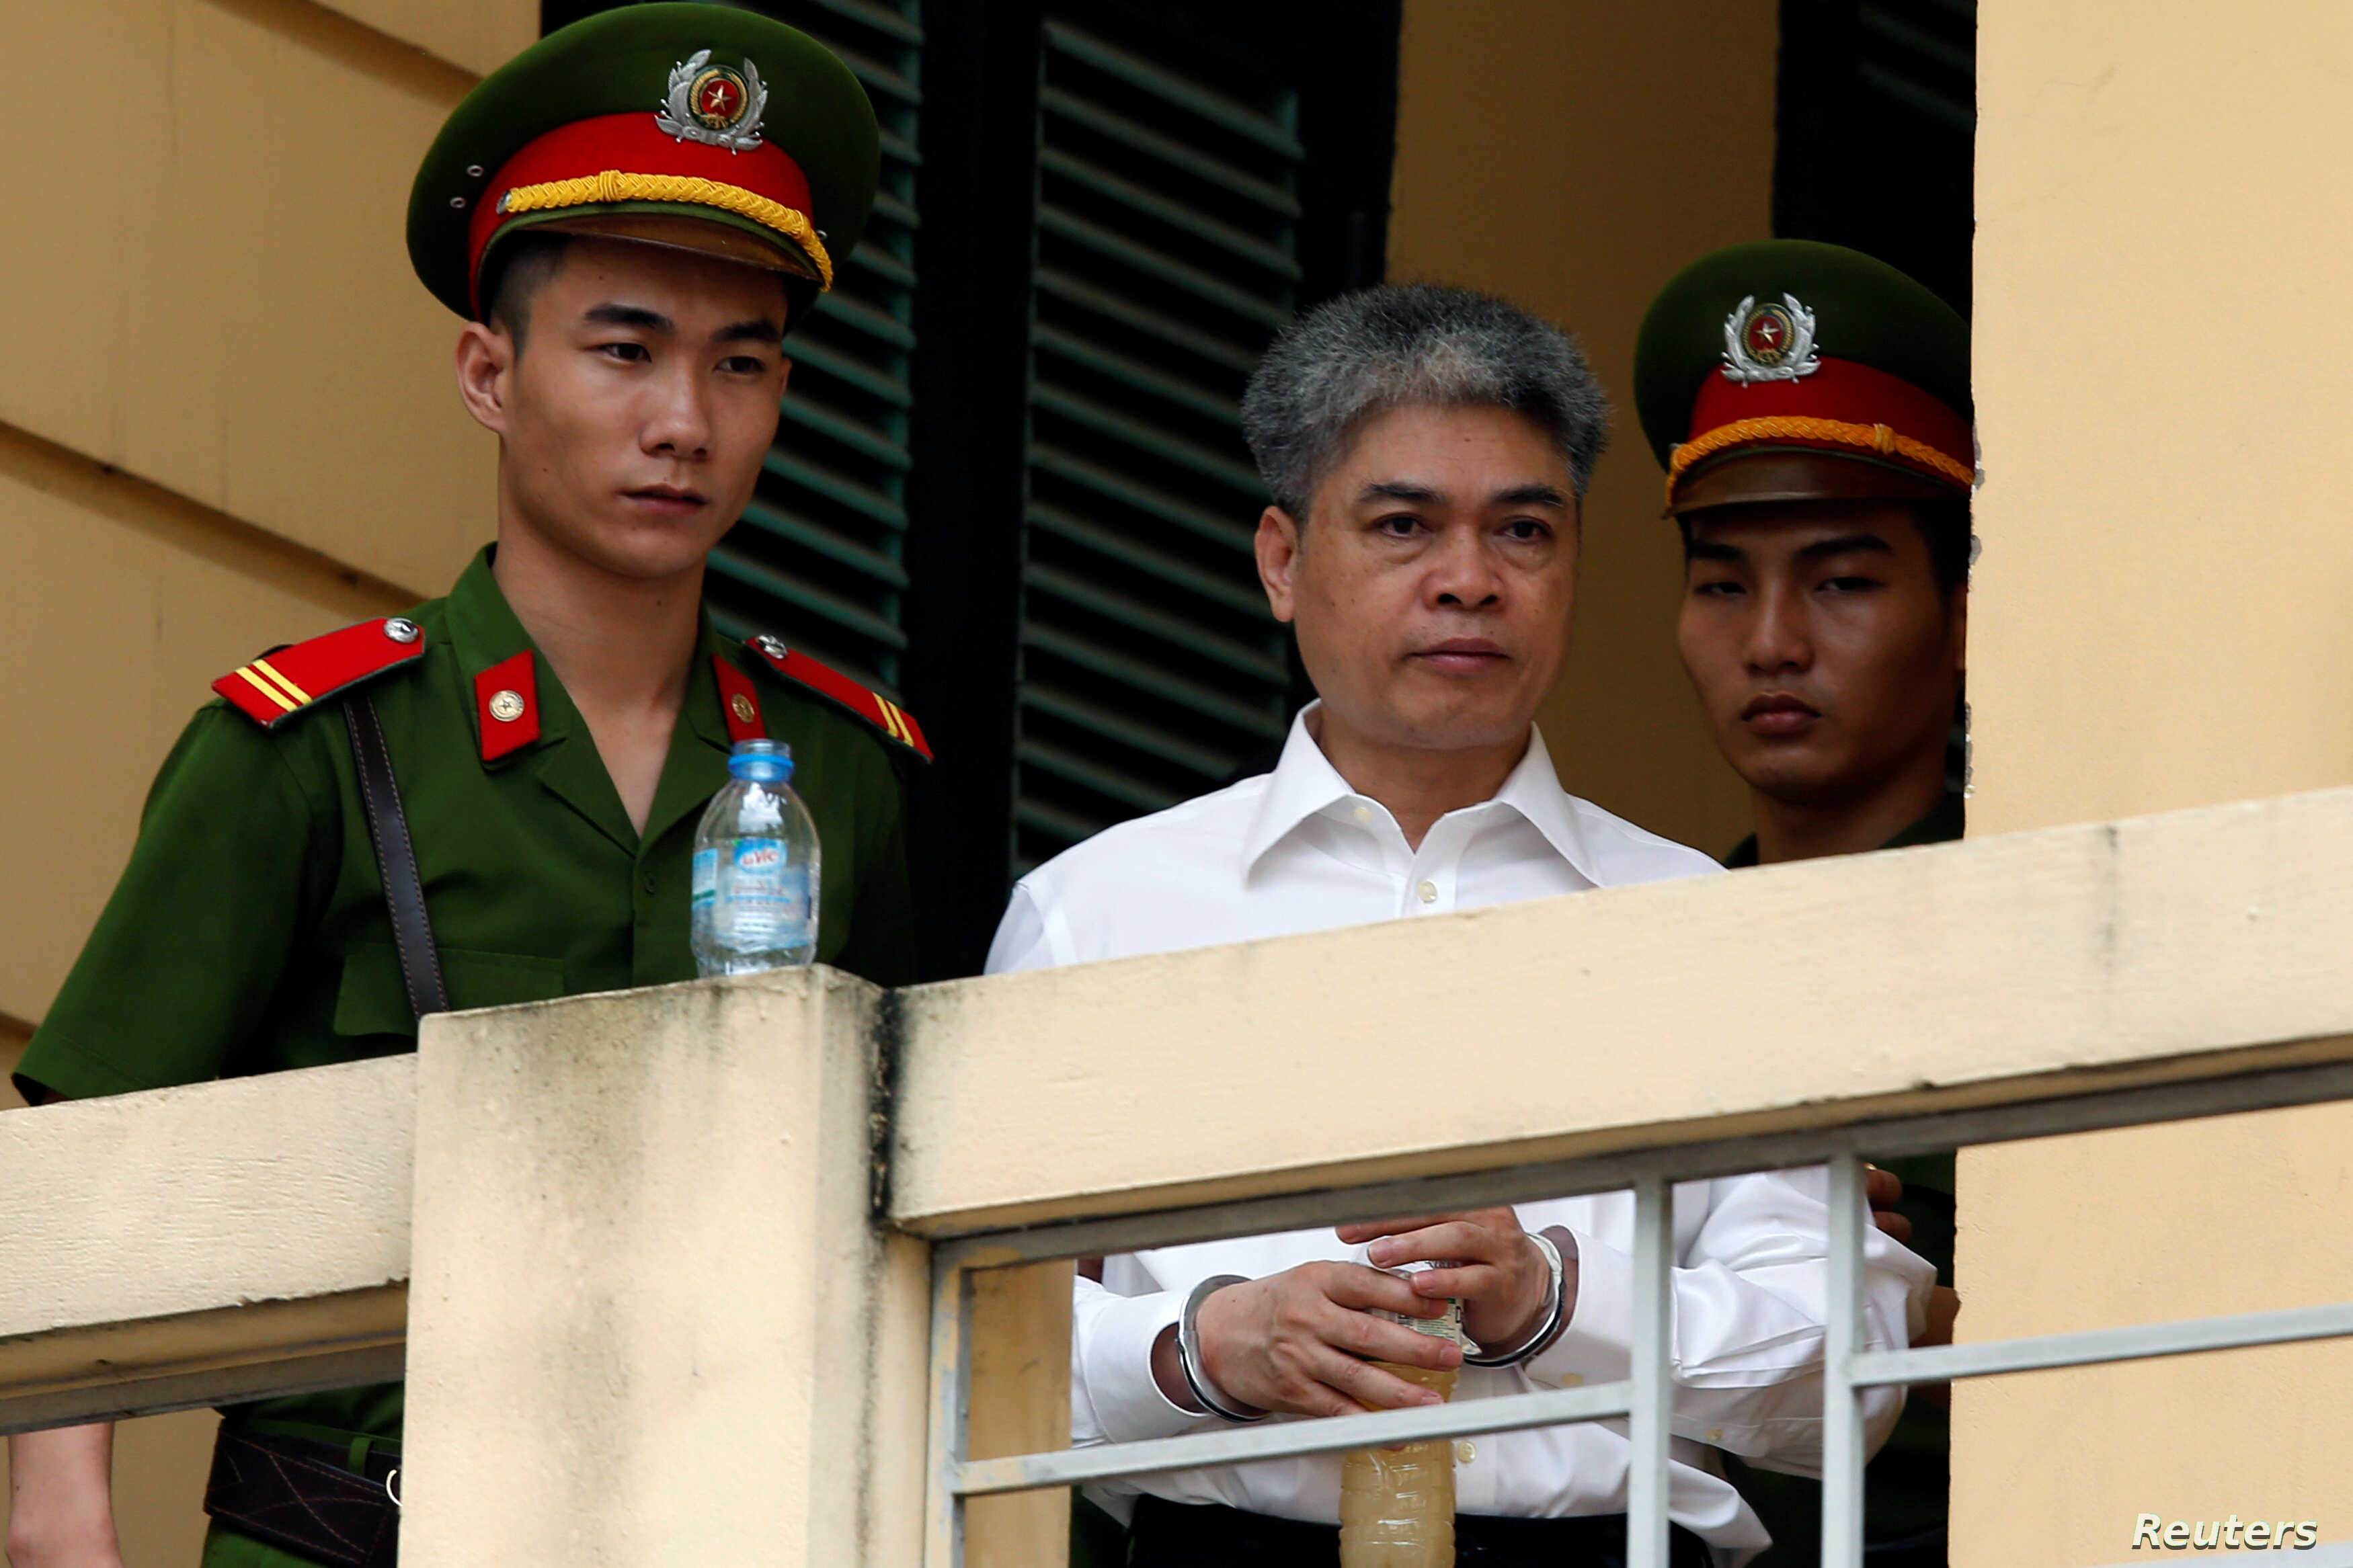 Former PetroVietnam chairman Nguyen Xuan Son is escorted by police as he leaves court after the verdict session in Hanoi, Vietnam, Sept. 29, 2017.